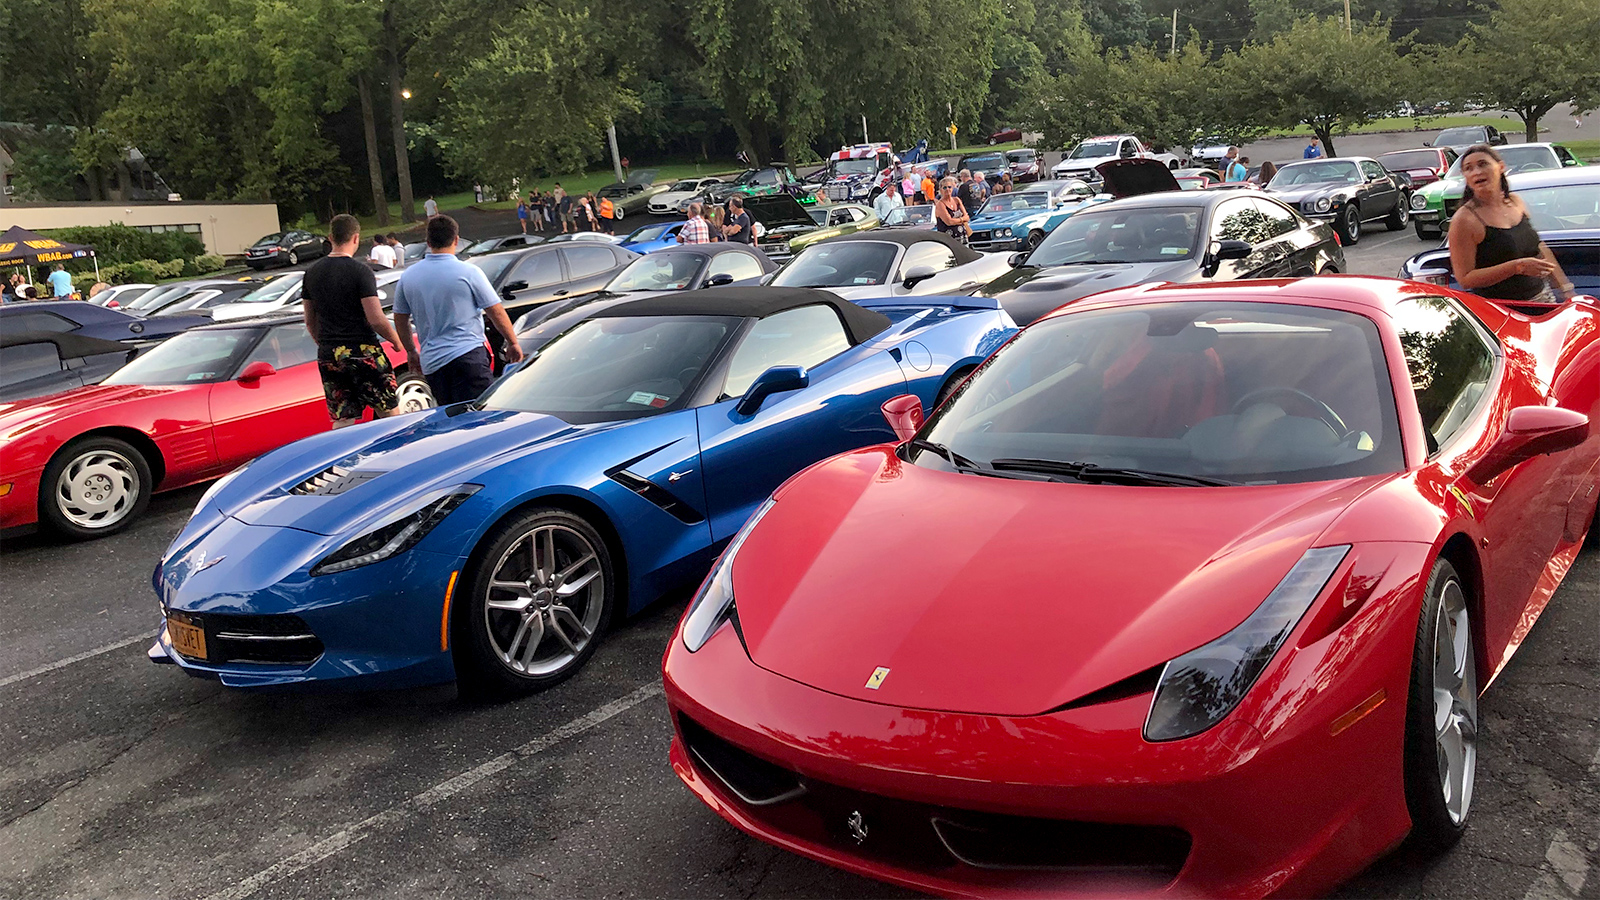 Annual car show thrives through thunderstorm